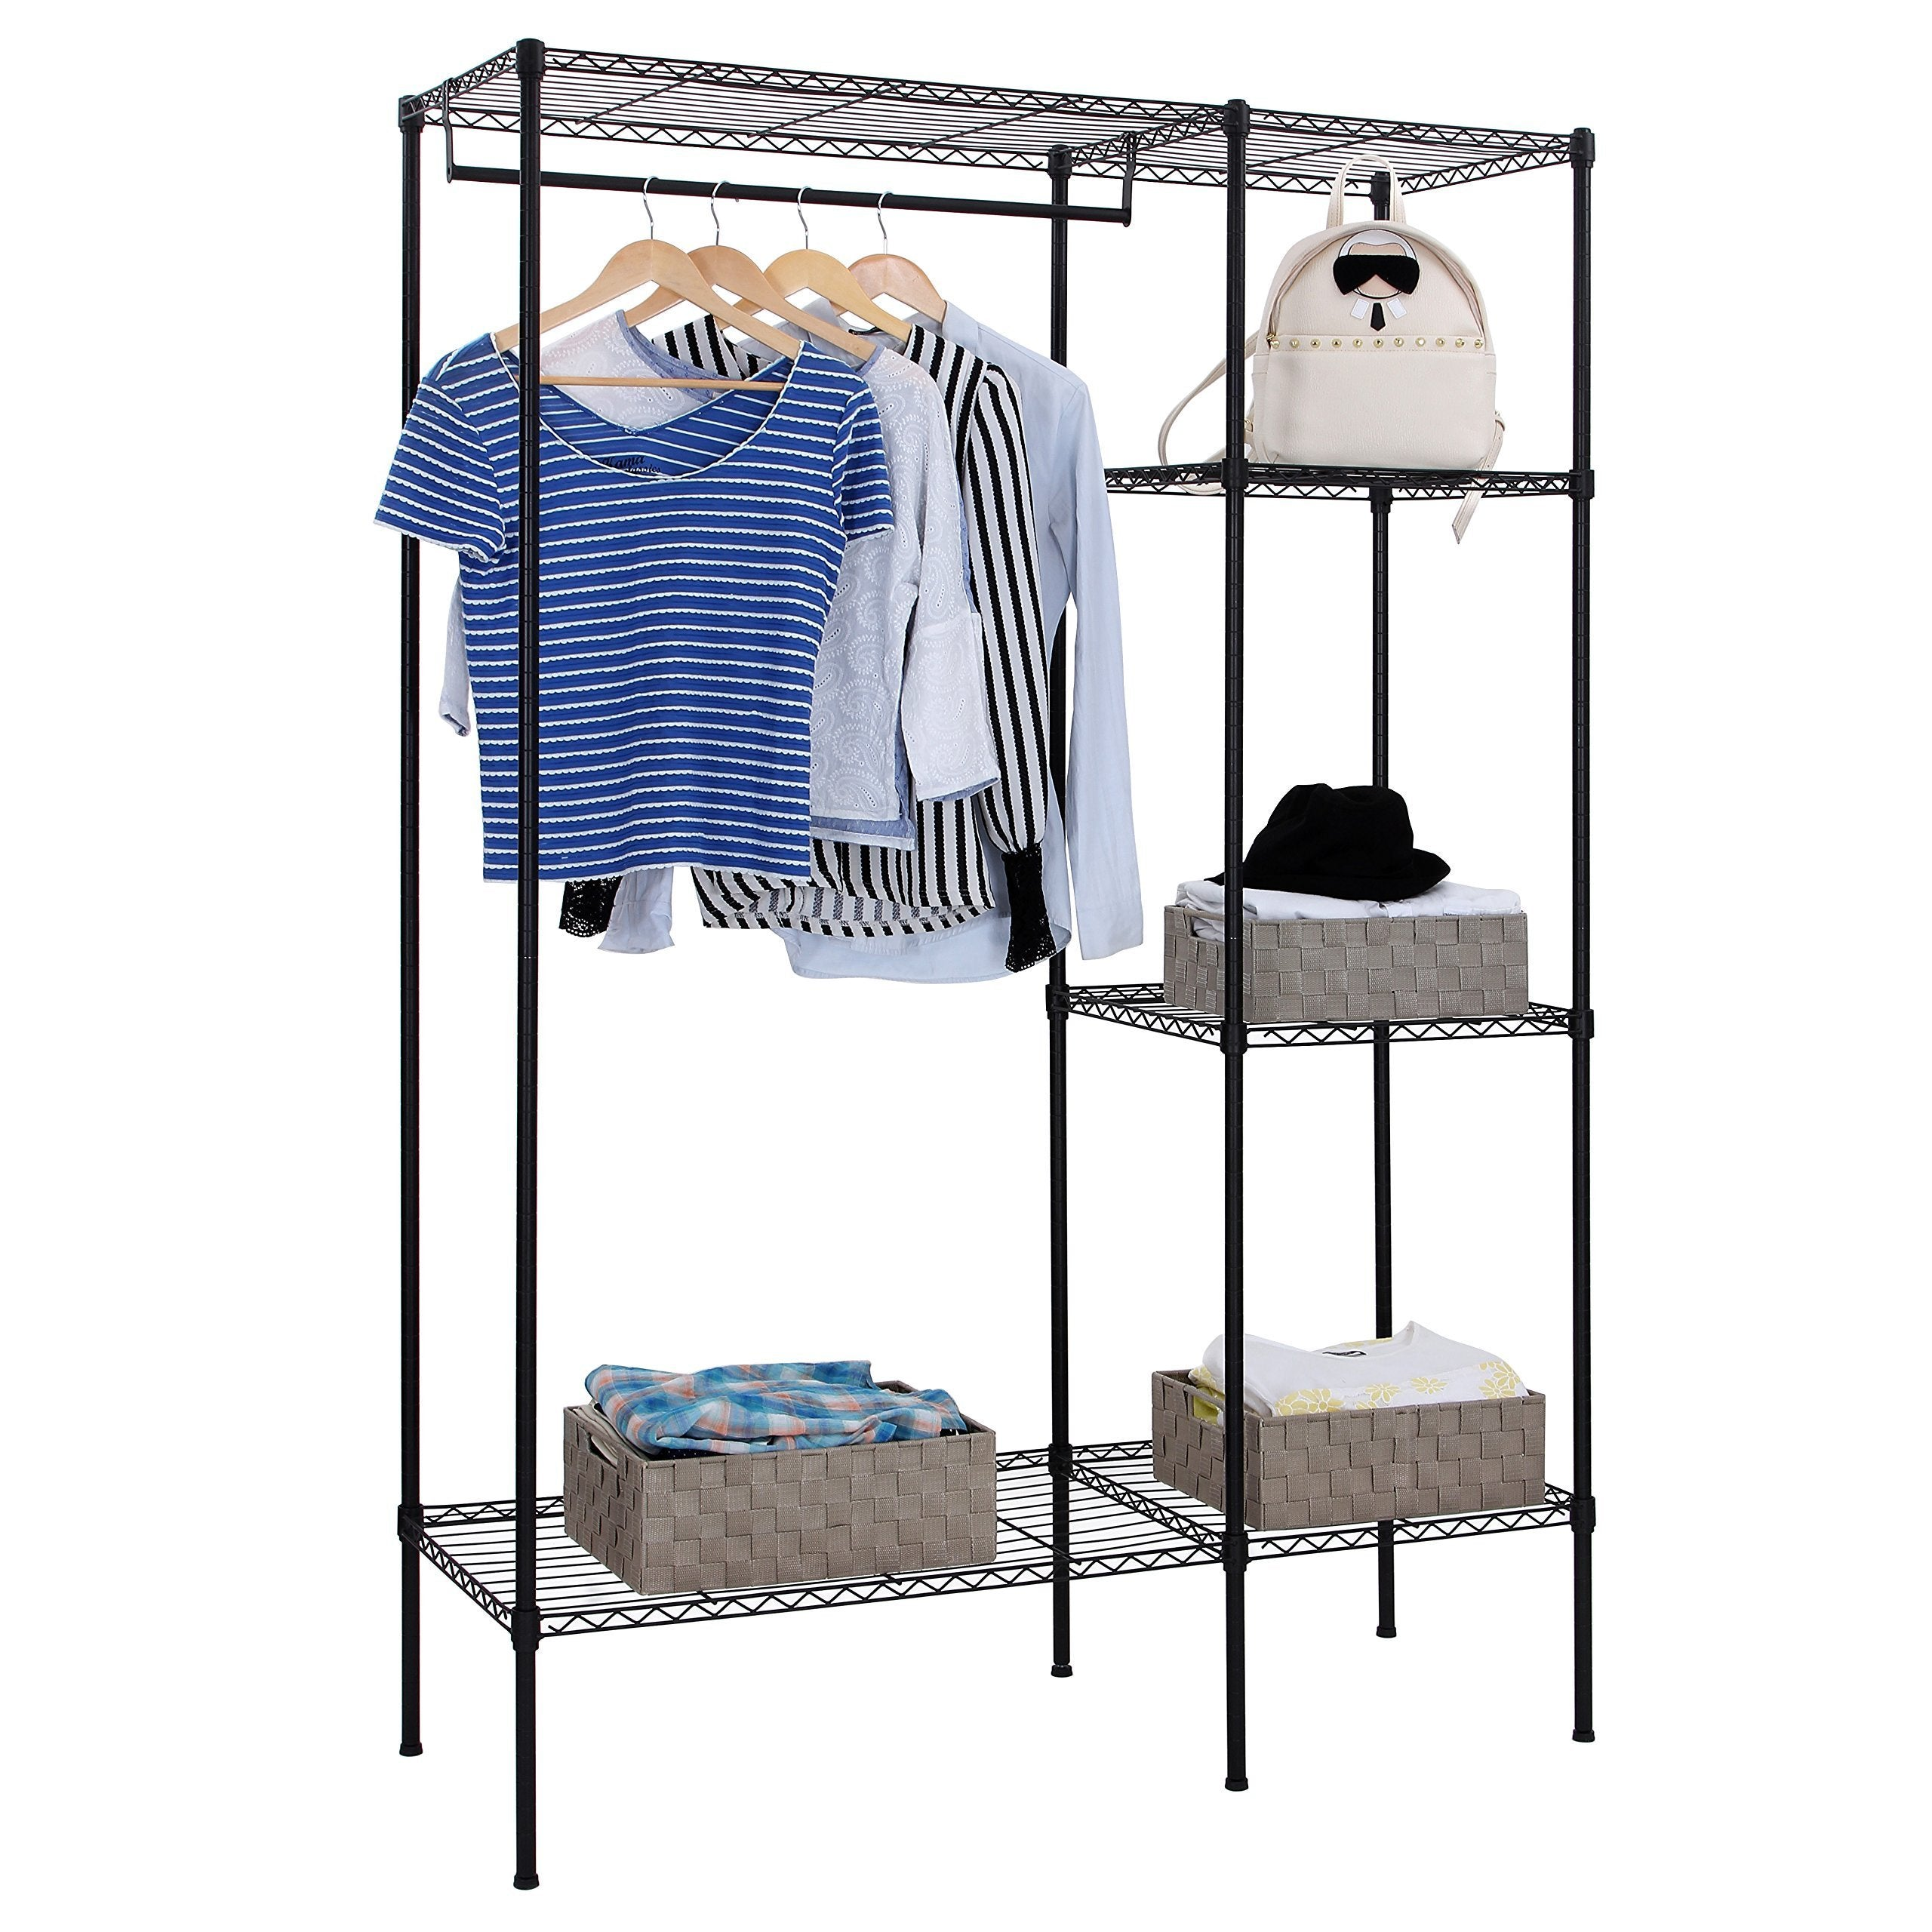 Best songmics extra large shelving garment rack heavy duty portable clothes wardrobe free standing closet storage organizer ulgr12p